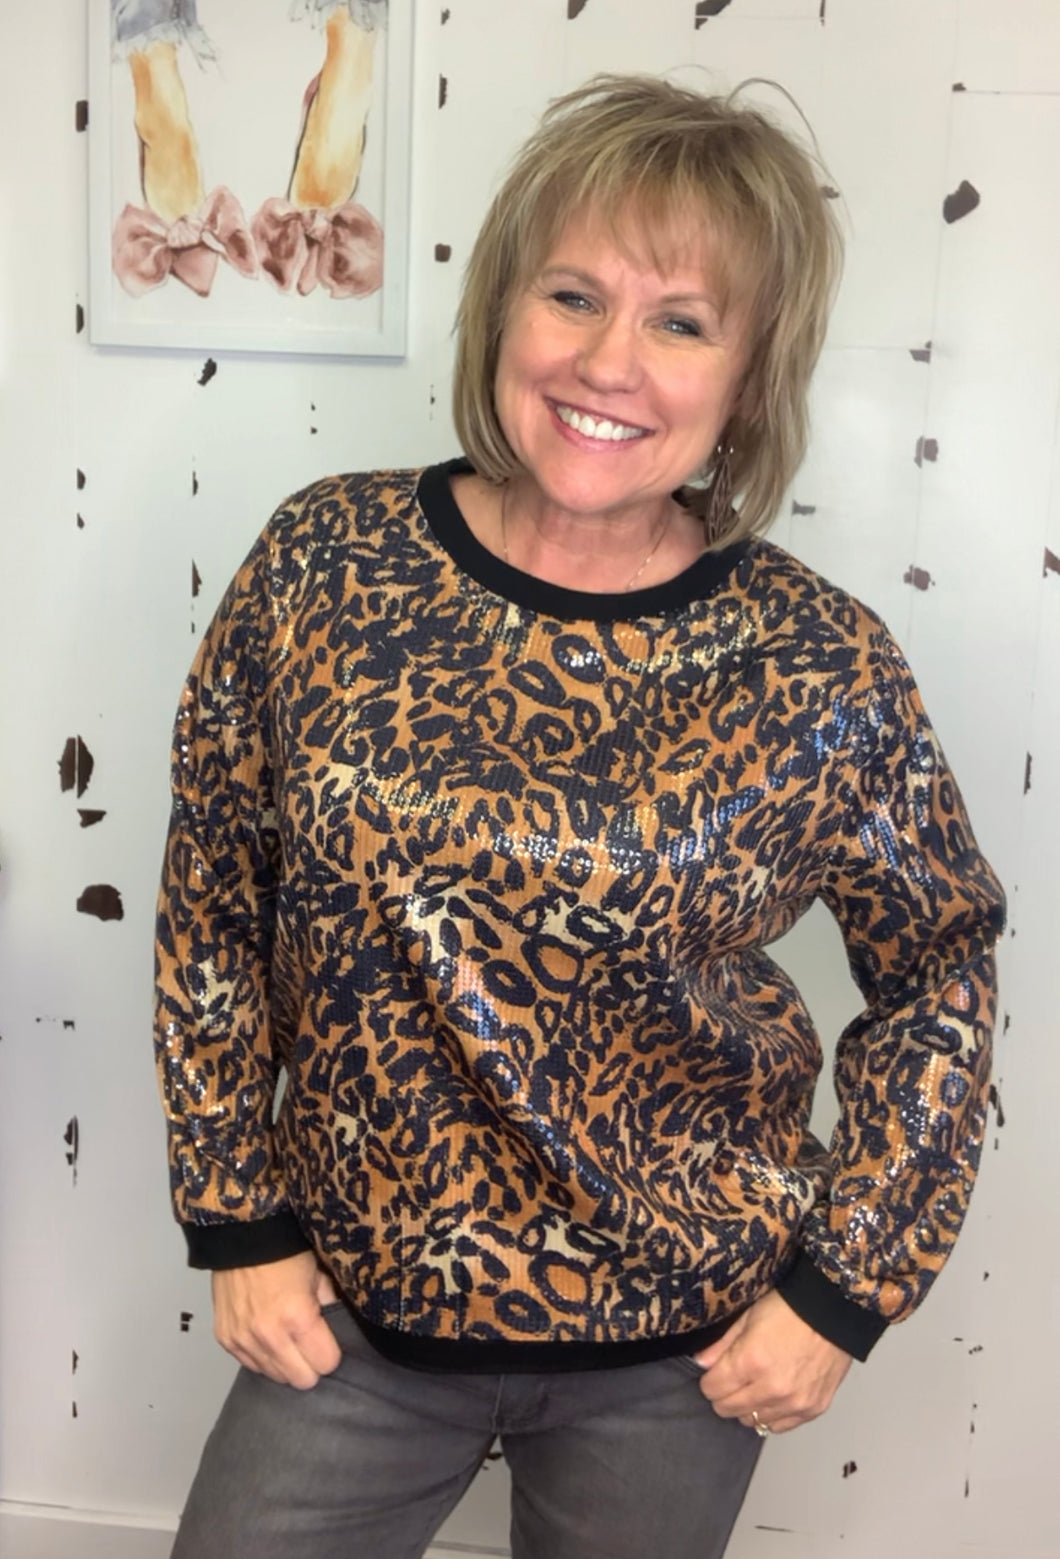 Celebrate Cheetah Sweatshirt - L and B